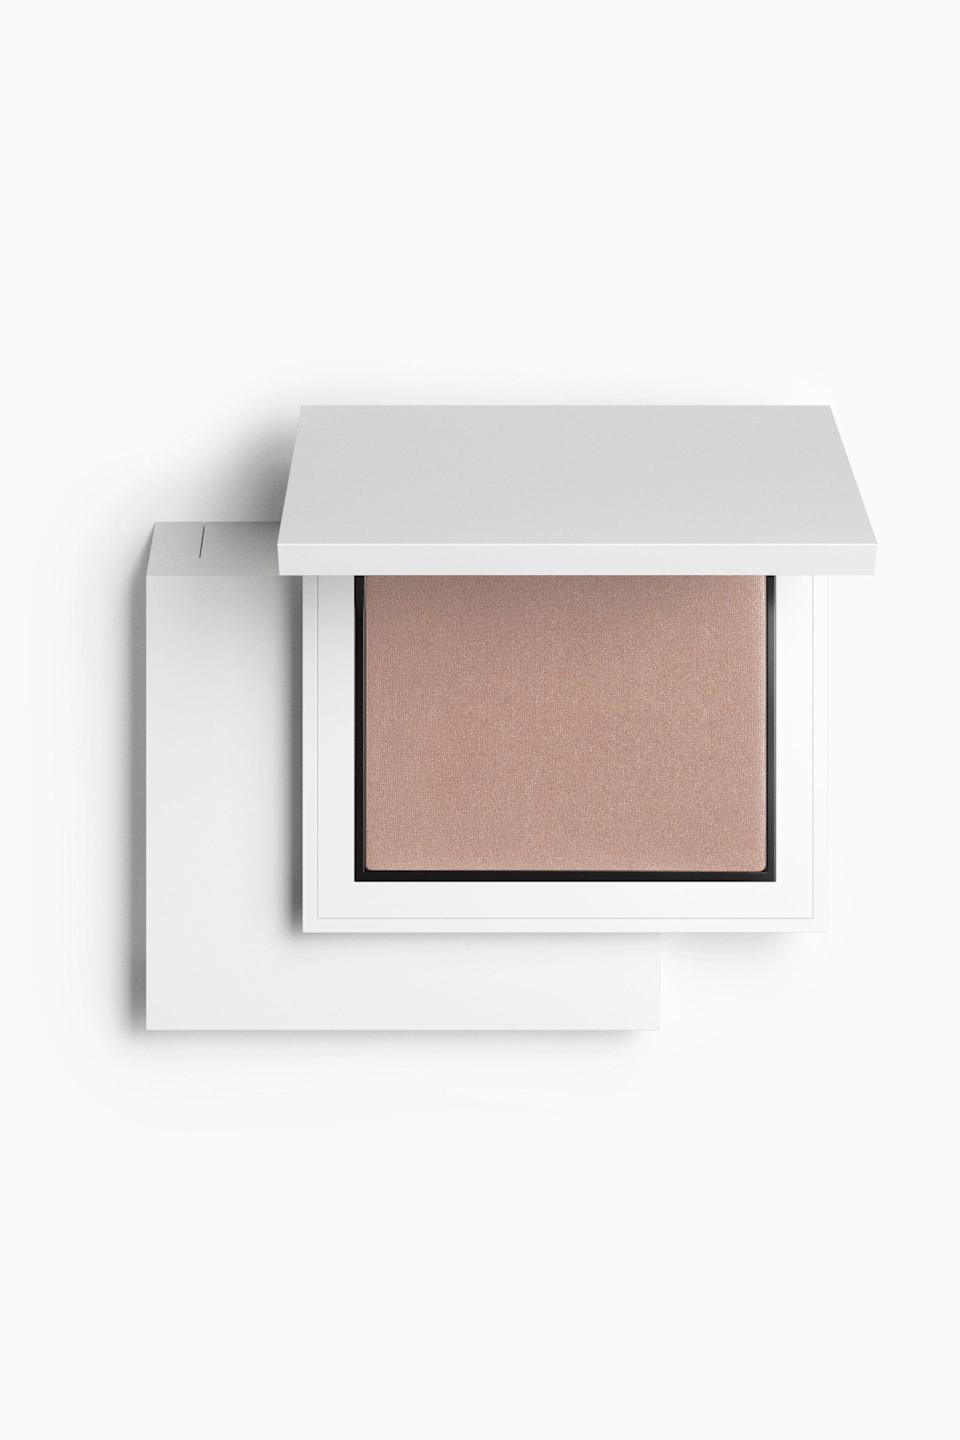 """<h3>Bronzer</h3><br>Kendal describes this refillable <a href=""""https://www.refinery29.com/en-us/best-bronzers-for-every-skin-tone"""" rel=""""nofollow noopener"""" target=""""_blank"""" data-ylk=""""slk:bronzer"""" class=""""link rapid-noclick-resp"""">bronzer</a>, available in five different shades, as a """"velvety powder"""" that gives skin an """"instant boost, subtly warming up.""""<br><br><strong>Zara</strong> Bronzer - Refillable, $, available at <a href=""""https://go.skimresources.com/?id=30283X879131&url=https%3A%2F%2Fwww.zara.com%2Fus%2Fen%2Fbronzer---refillable-p24130105.html"""" rel=""""nofollow noopener"""" target=""""_blank"""" data-ylk=""""slk:Zara"""" class=""""link rapid-noclick-resp"""">Zara</a>"""